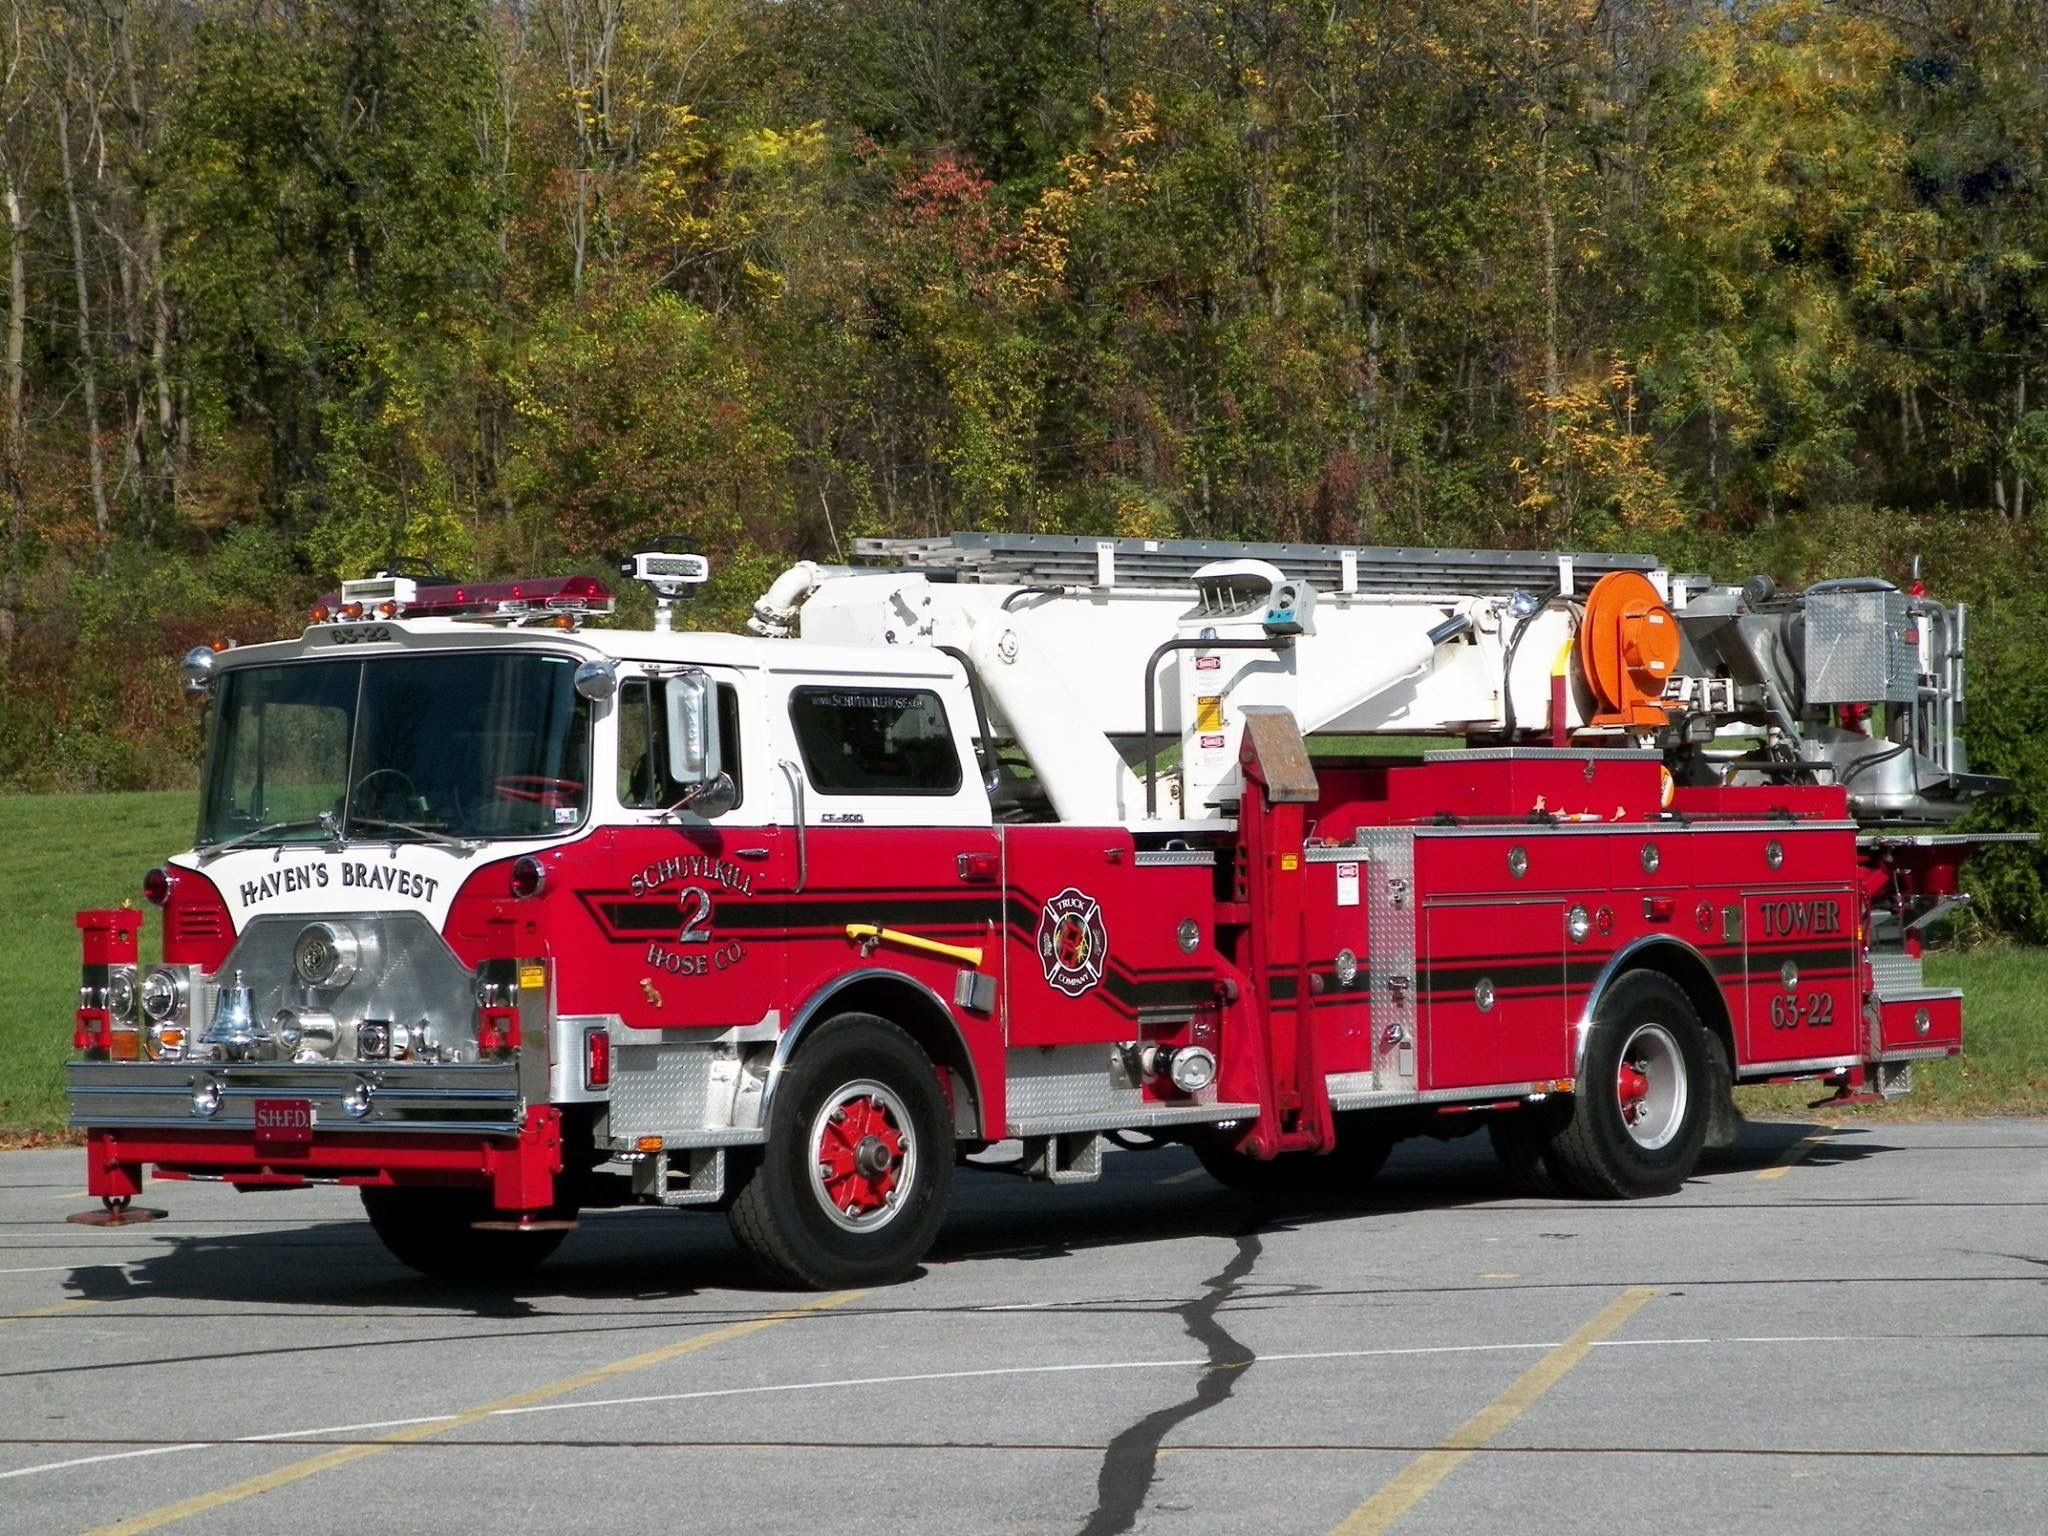 Heavy truck rescue vehicles emergency response fire apparatus fire truck fire department fire engine firefighting writing prompts